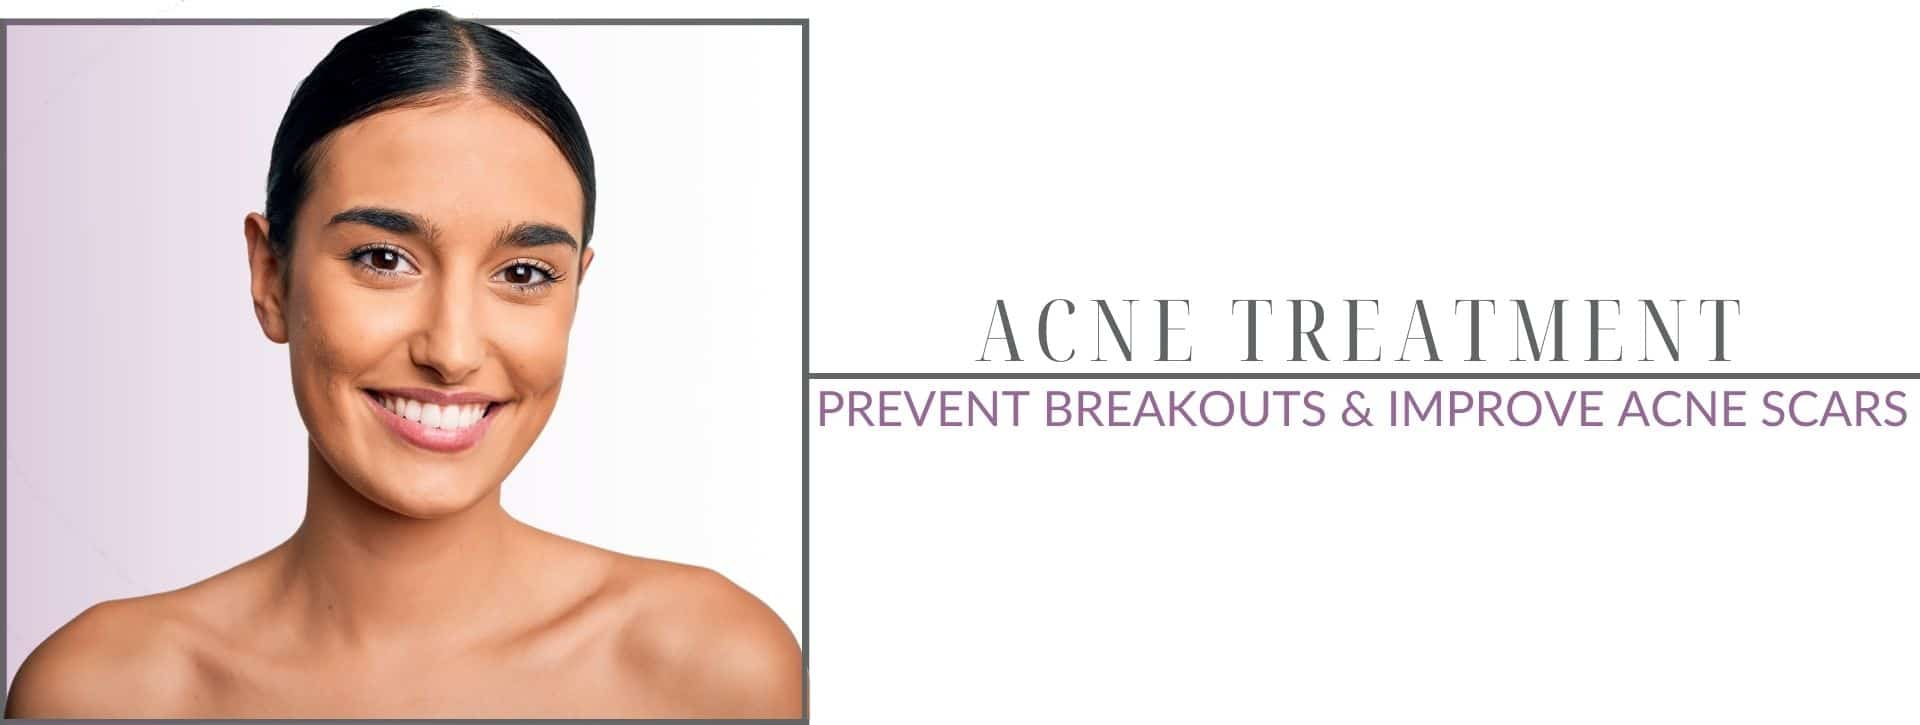 young woman with beautiful face from acne treatments